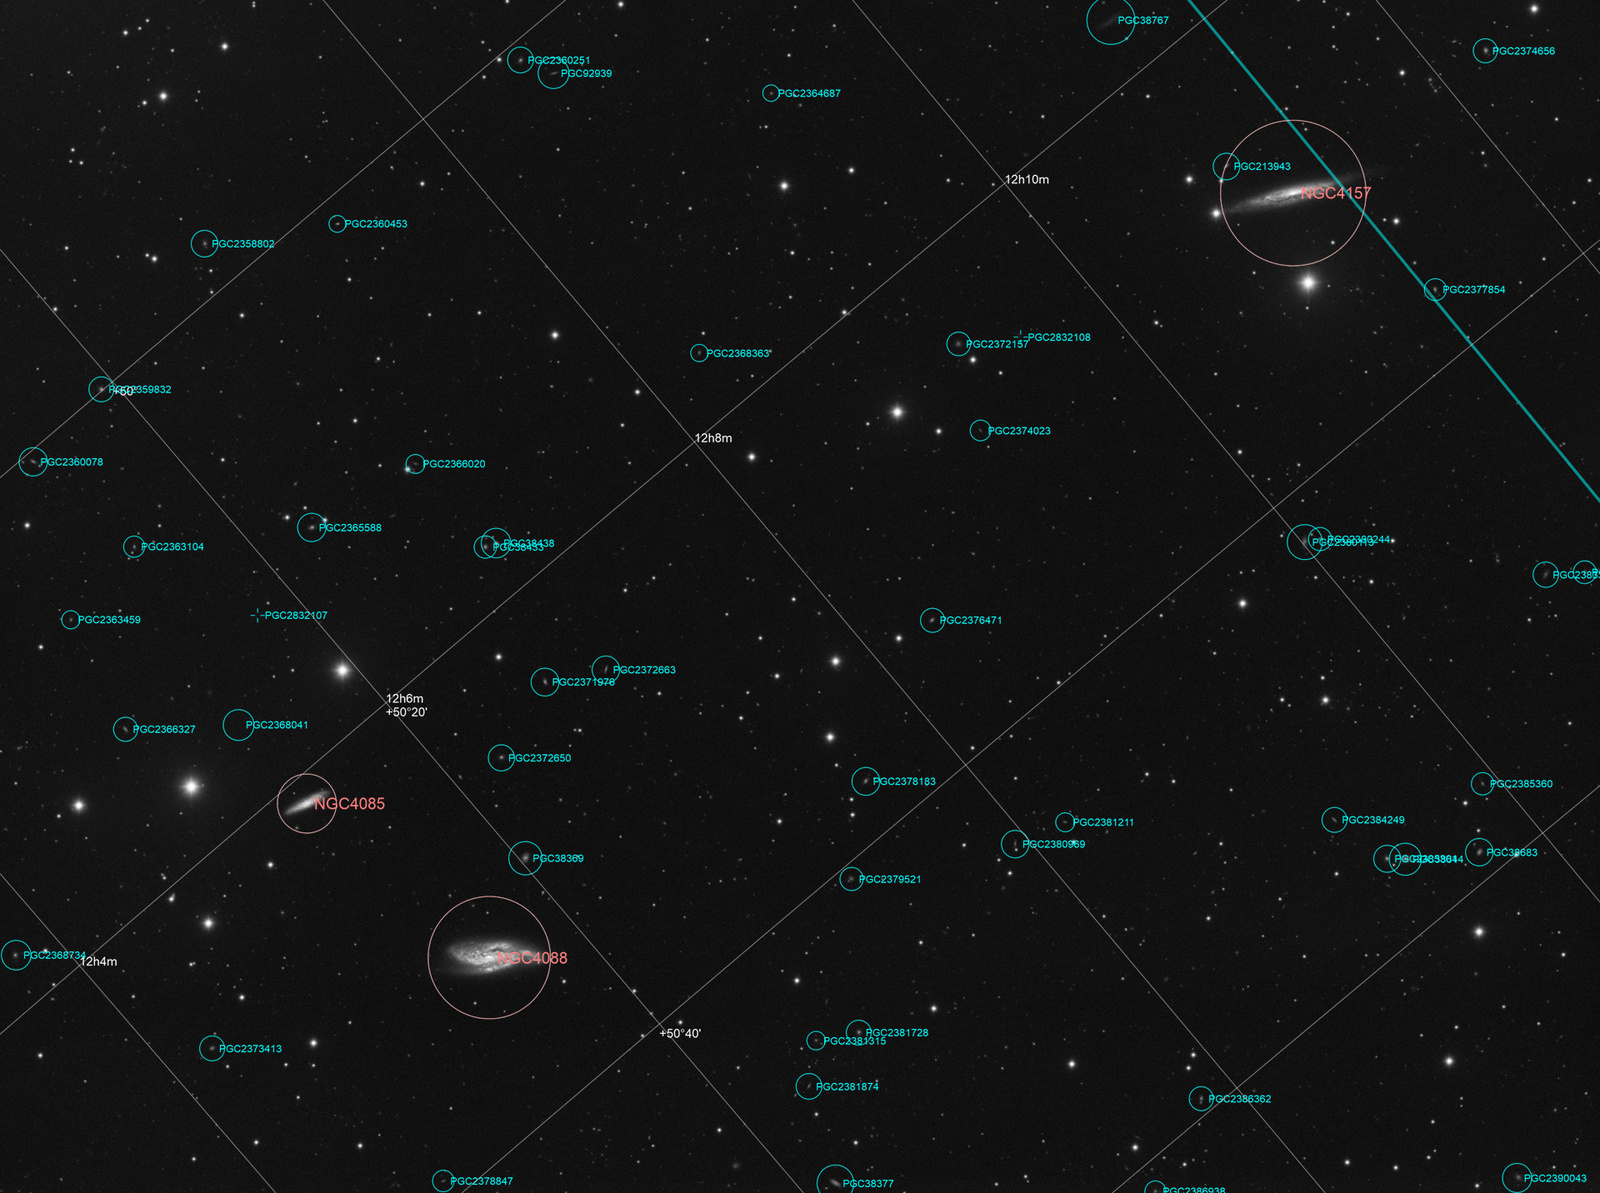 !Final_NGC4088_L_annotated_1920px.jpg